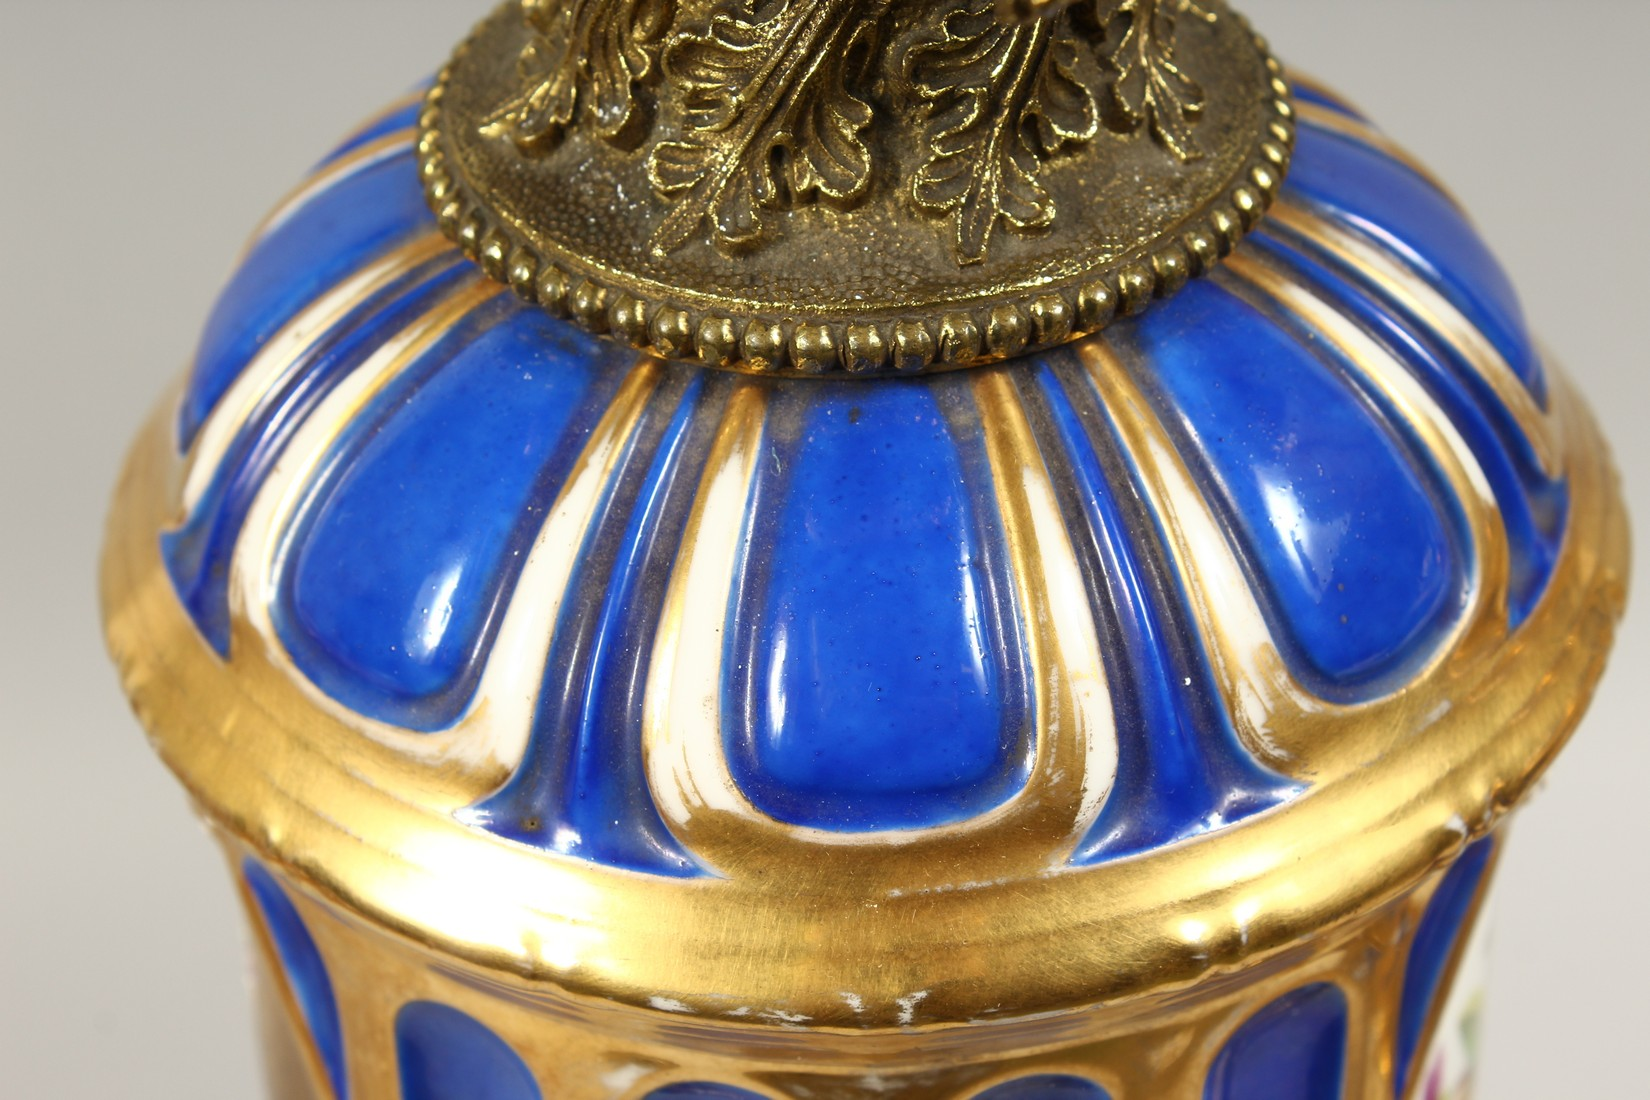 A SUPERB PAIR OF 19TH CENTURY FRENCH PORCELAIN AND GILT BRONZE LAMPS ON STANDS, painted with - Image 19 of 24